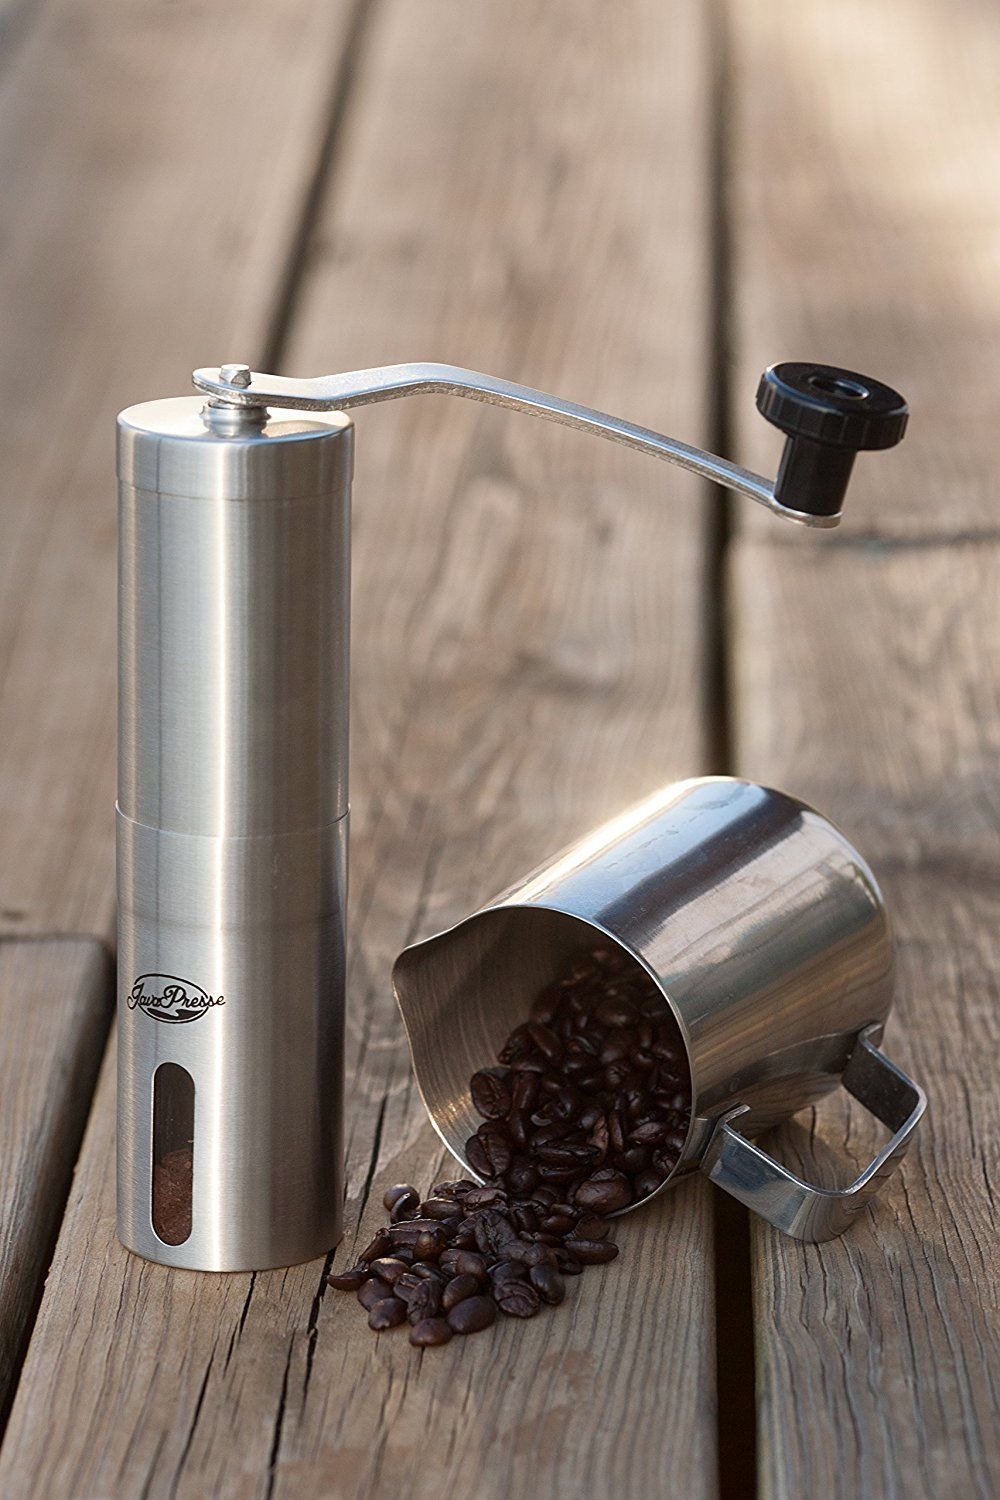 JavaPresse Manual Coffee Grinder Manual coffee grinder